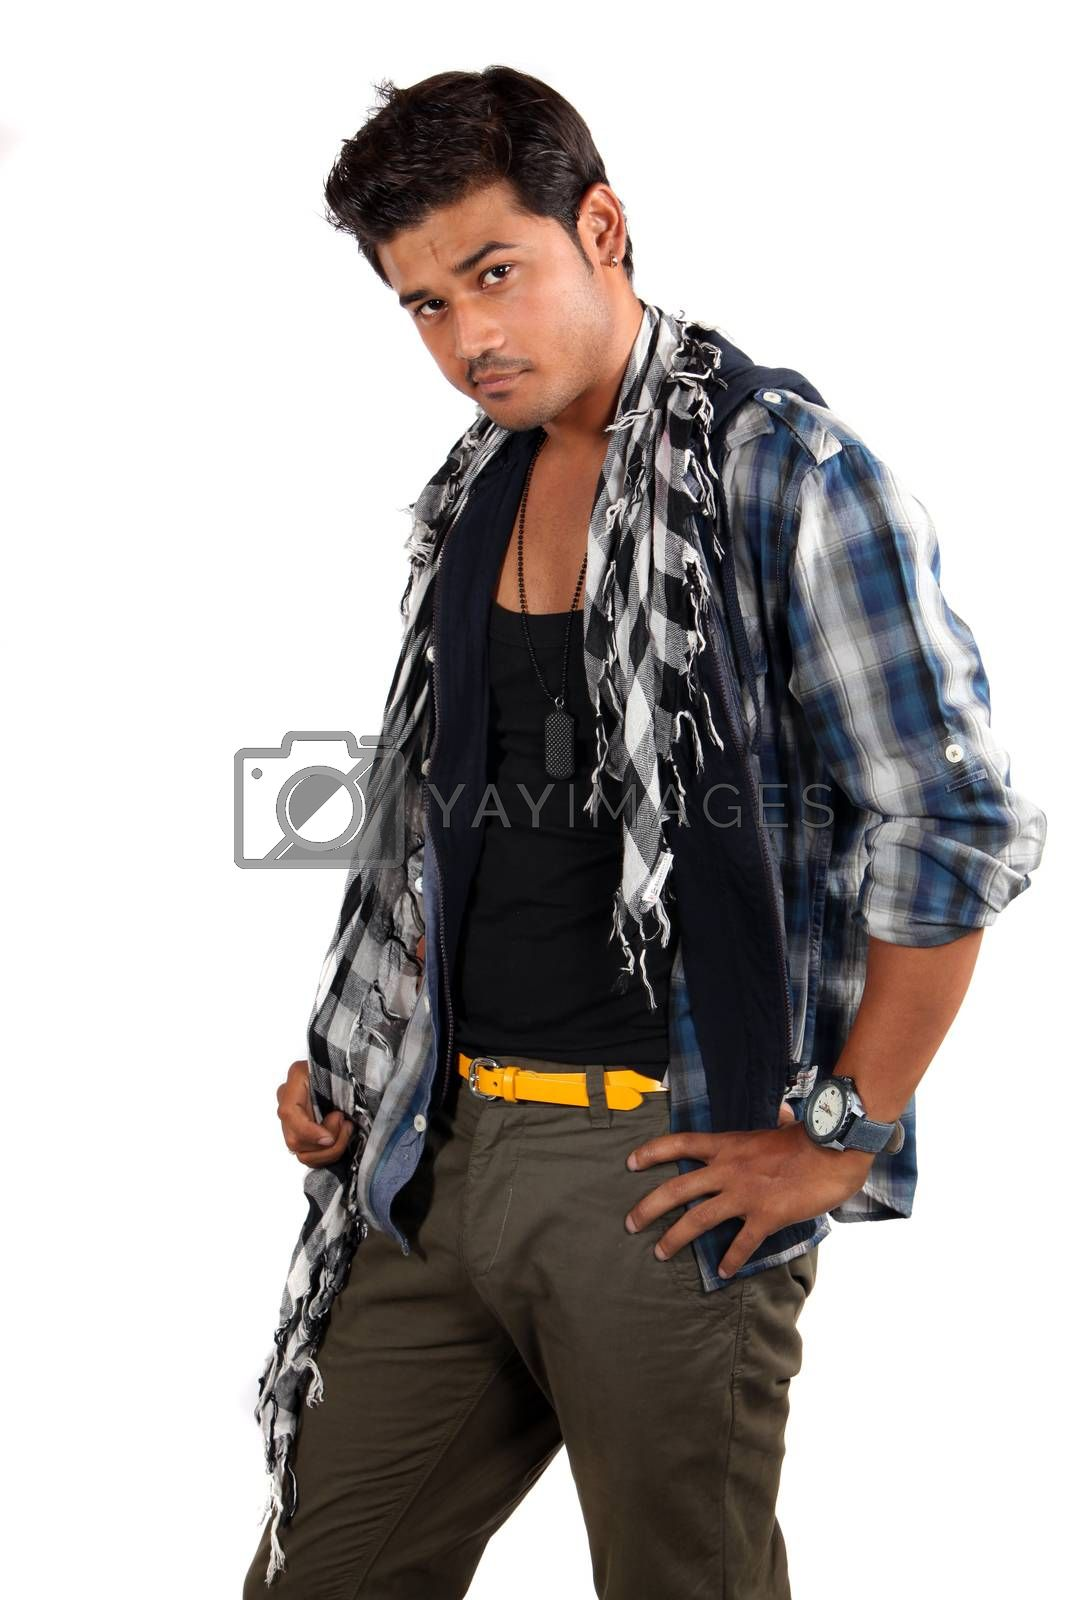 A young handsome Indian model posing in style, on white studio background.